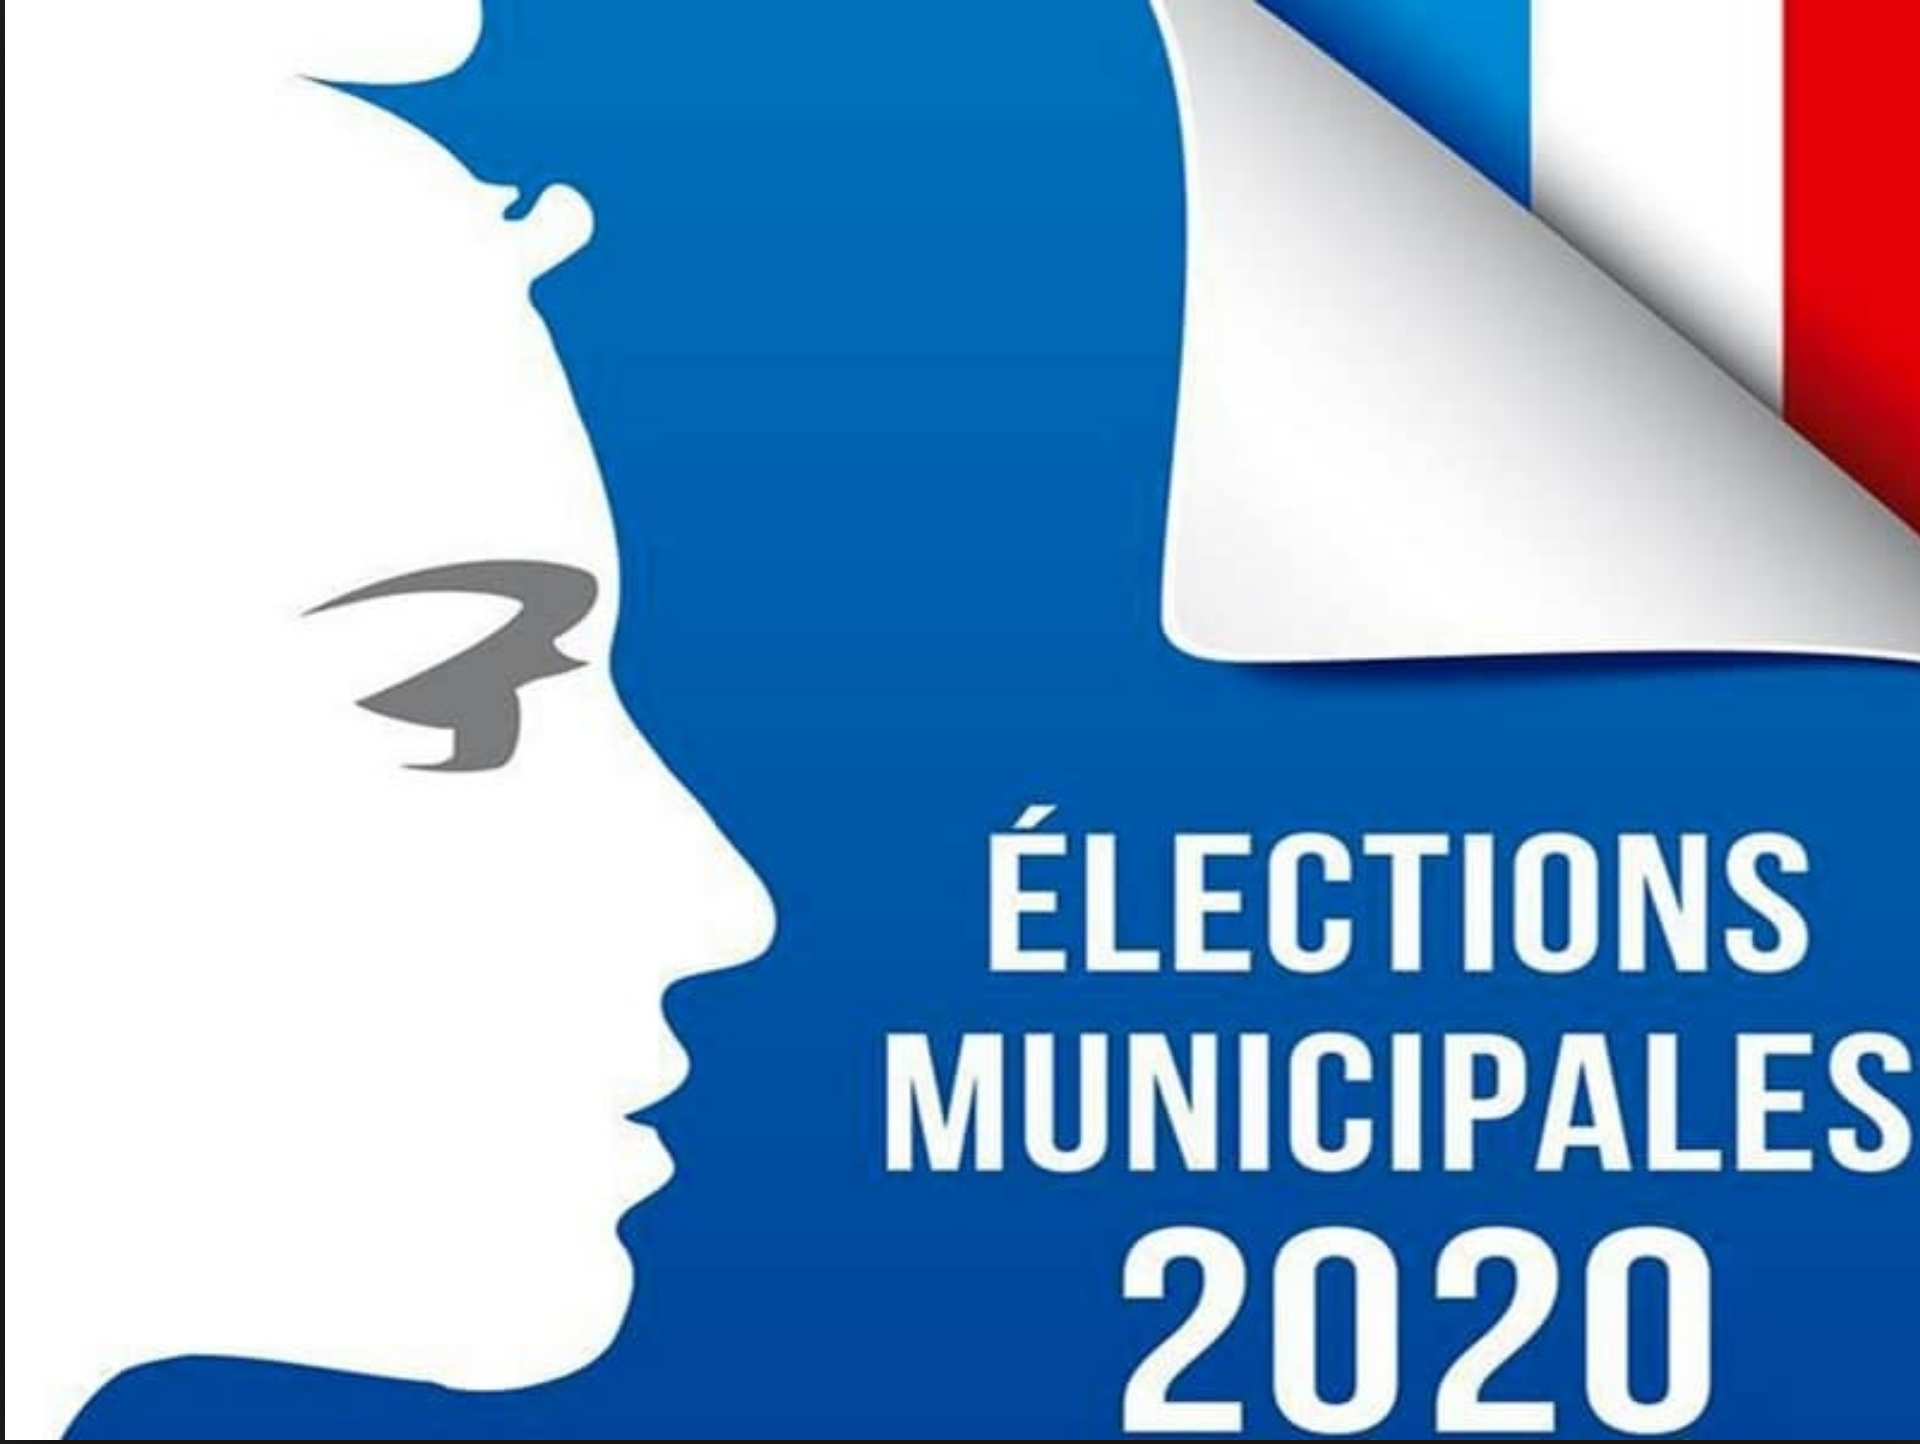 Élection municipale 2020